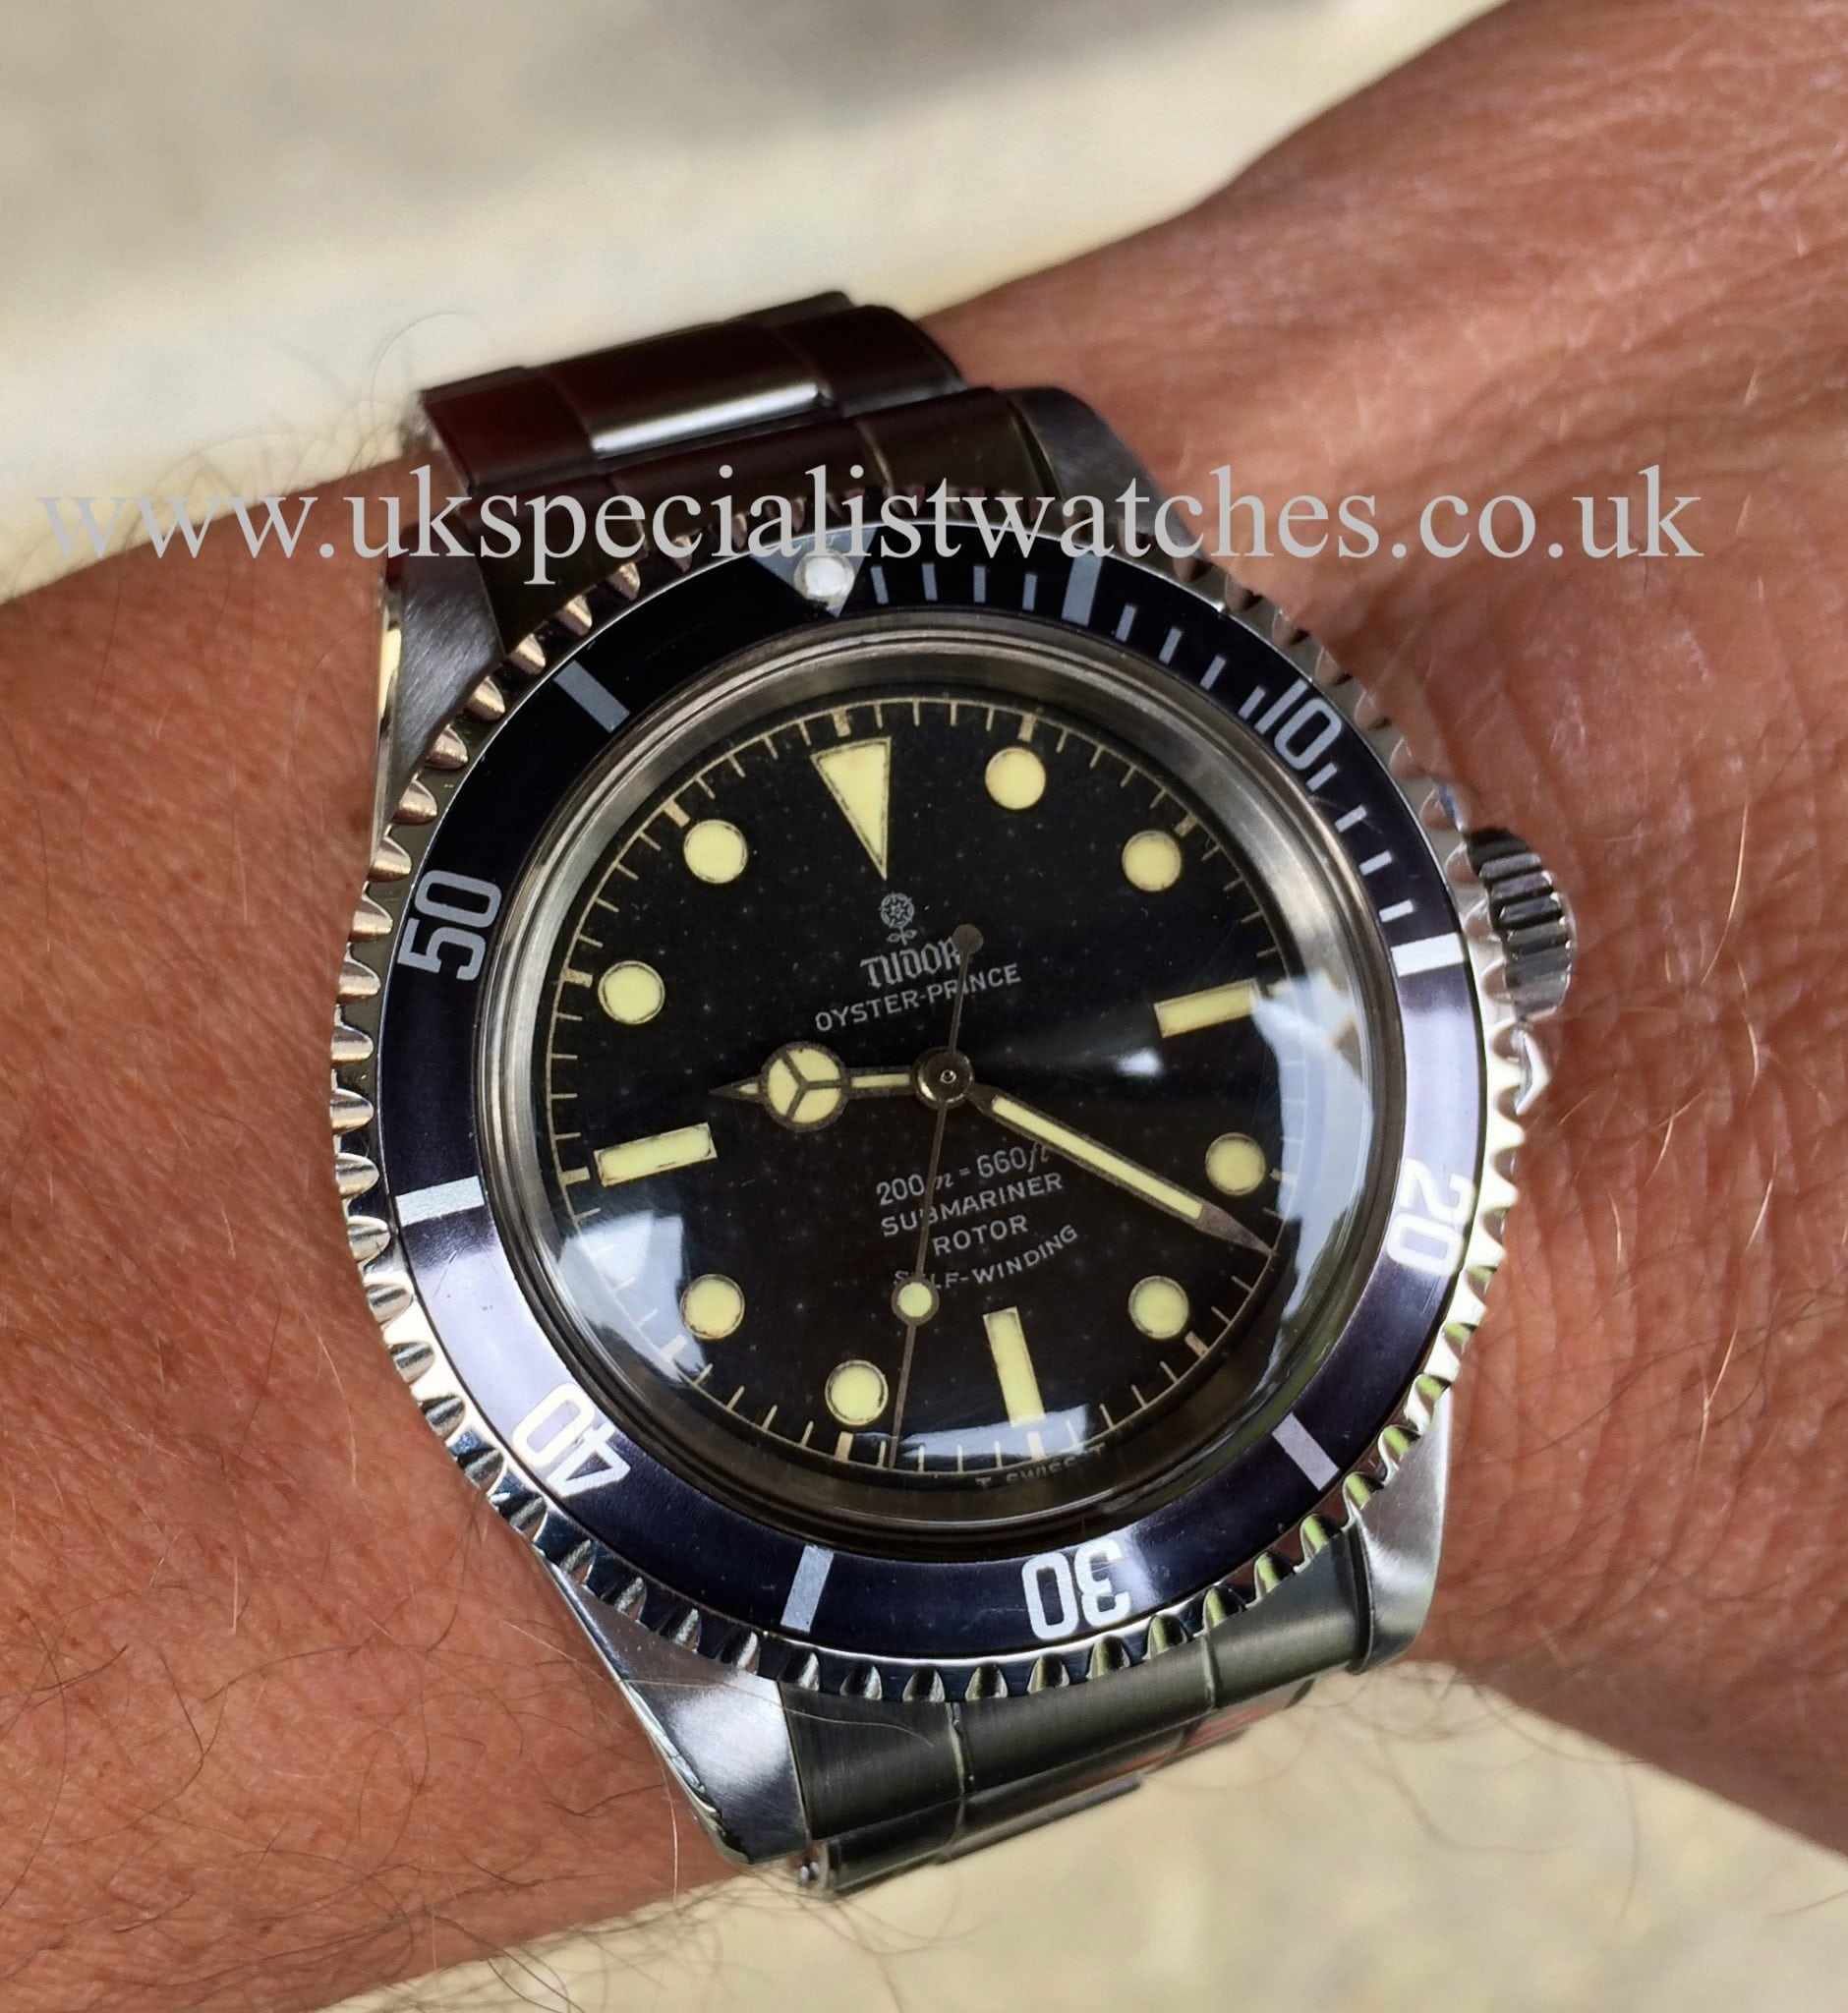 Ladies Rolex Watches Uk >> Tudor Vintage Submariner7928 Oyster Prince 1965 – UK Specialist Watches